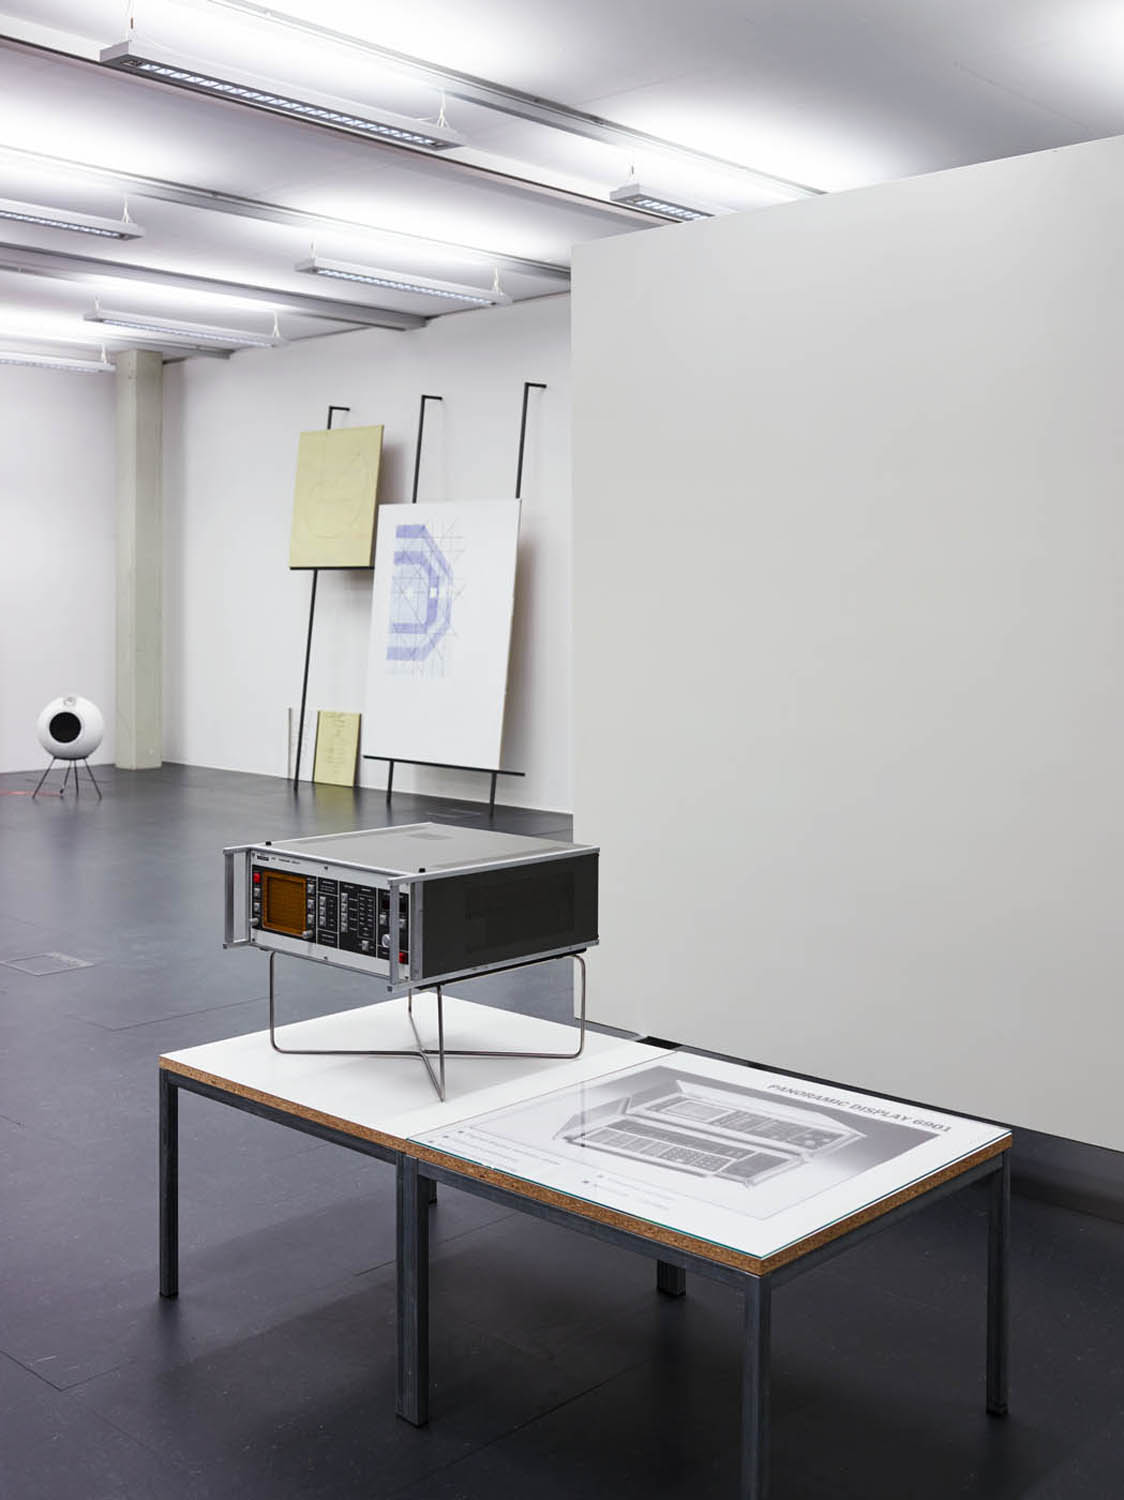 Agnes Fuchs — Robustesse et perfection, Kunstraum Lakeside | Foto: Johannes Puch